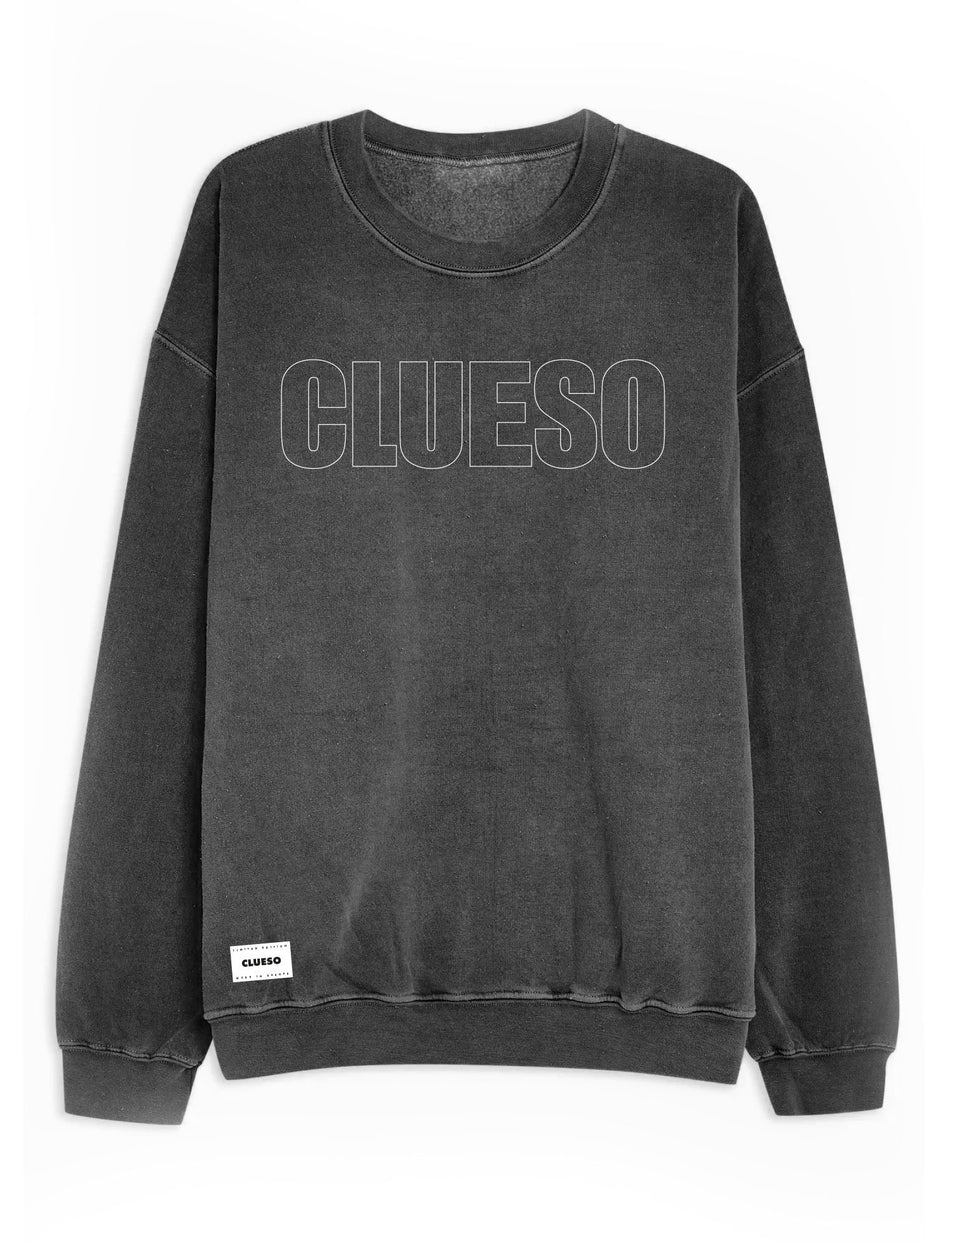 Clueso Sweater grau - Clueso Shop